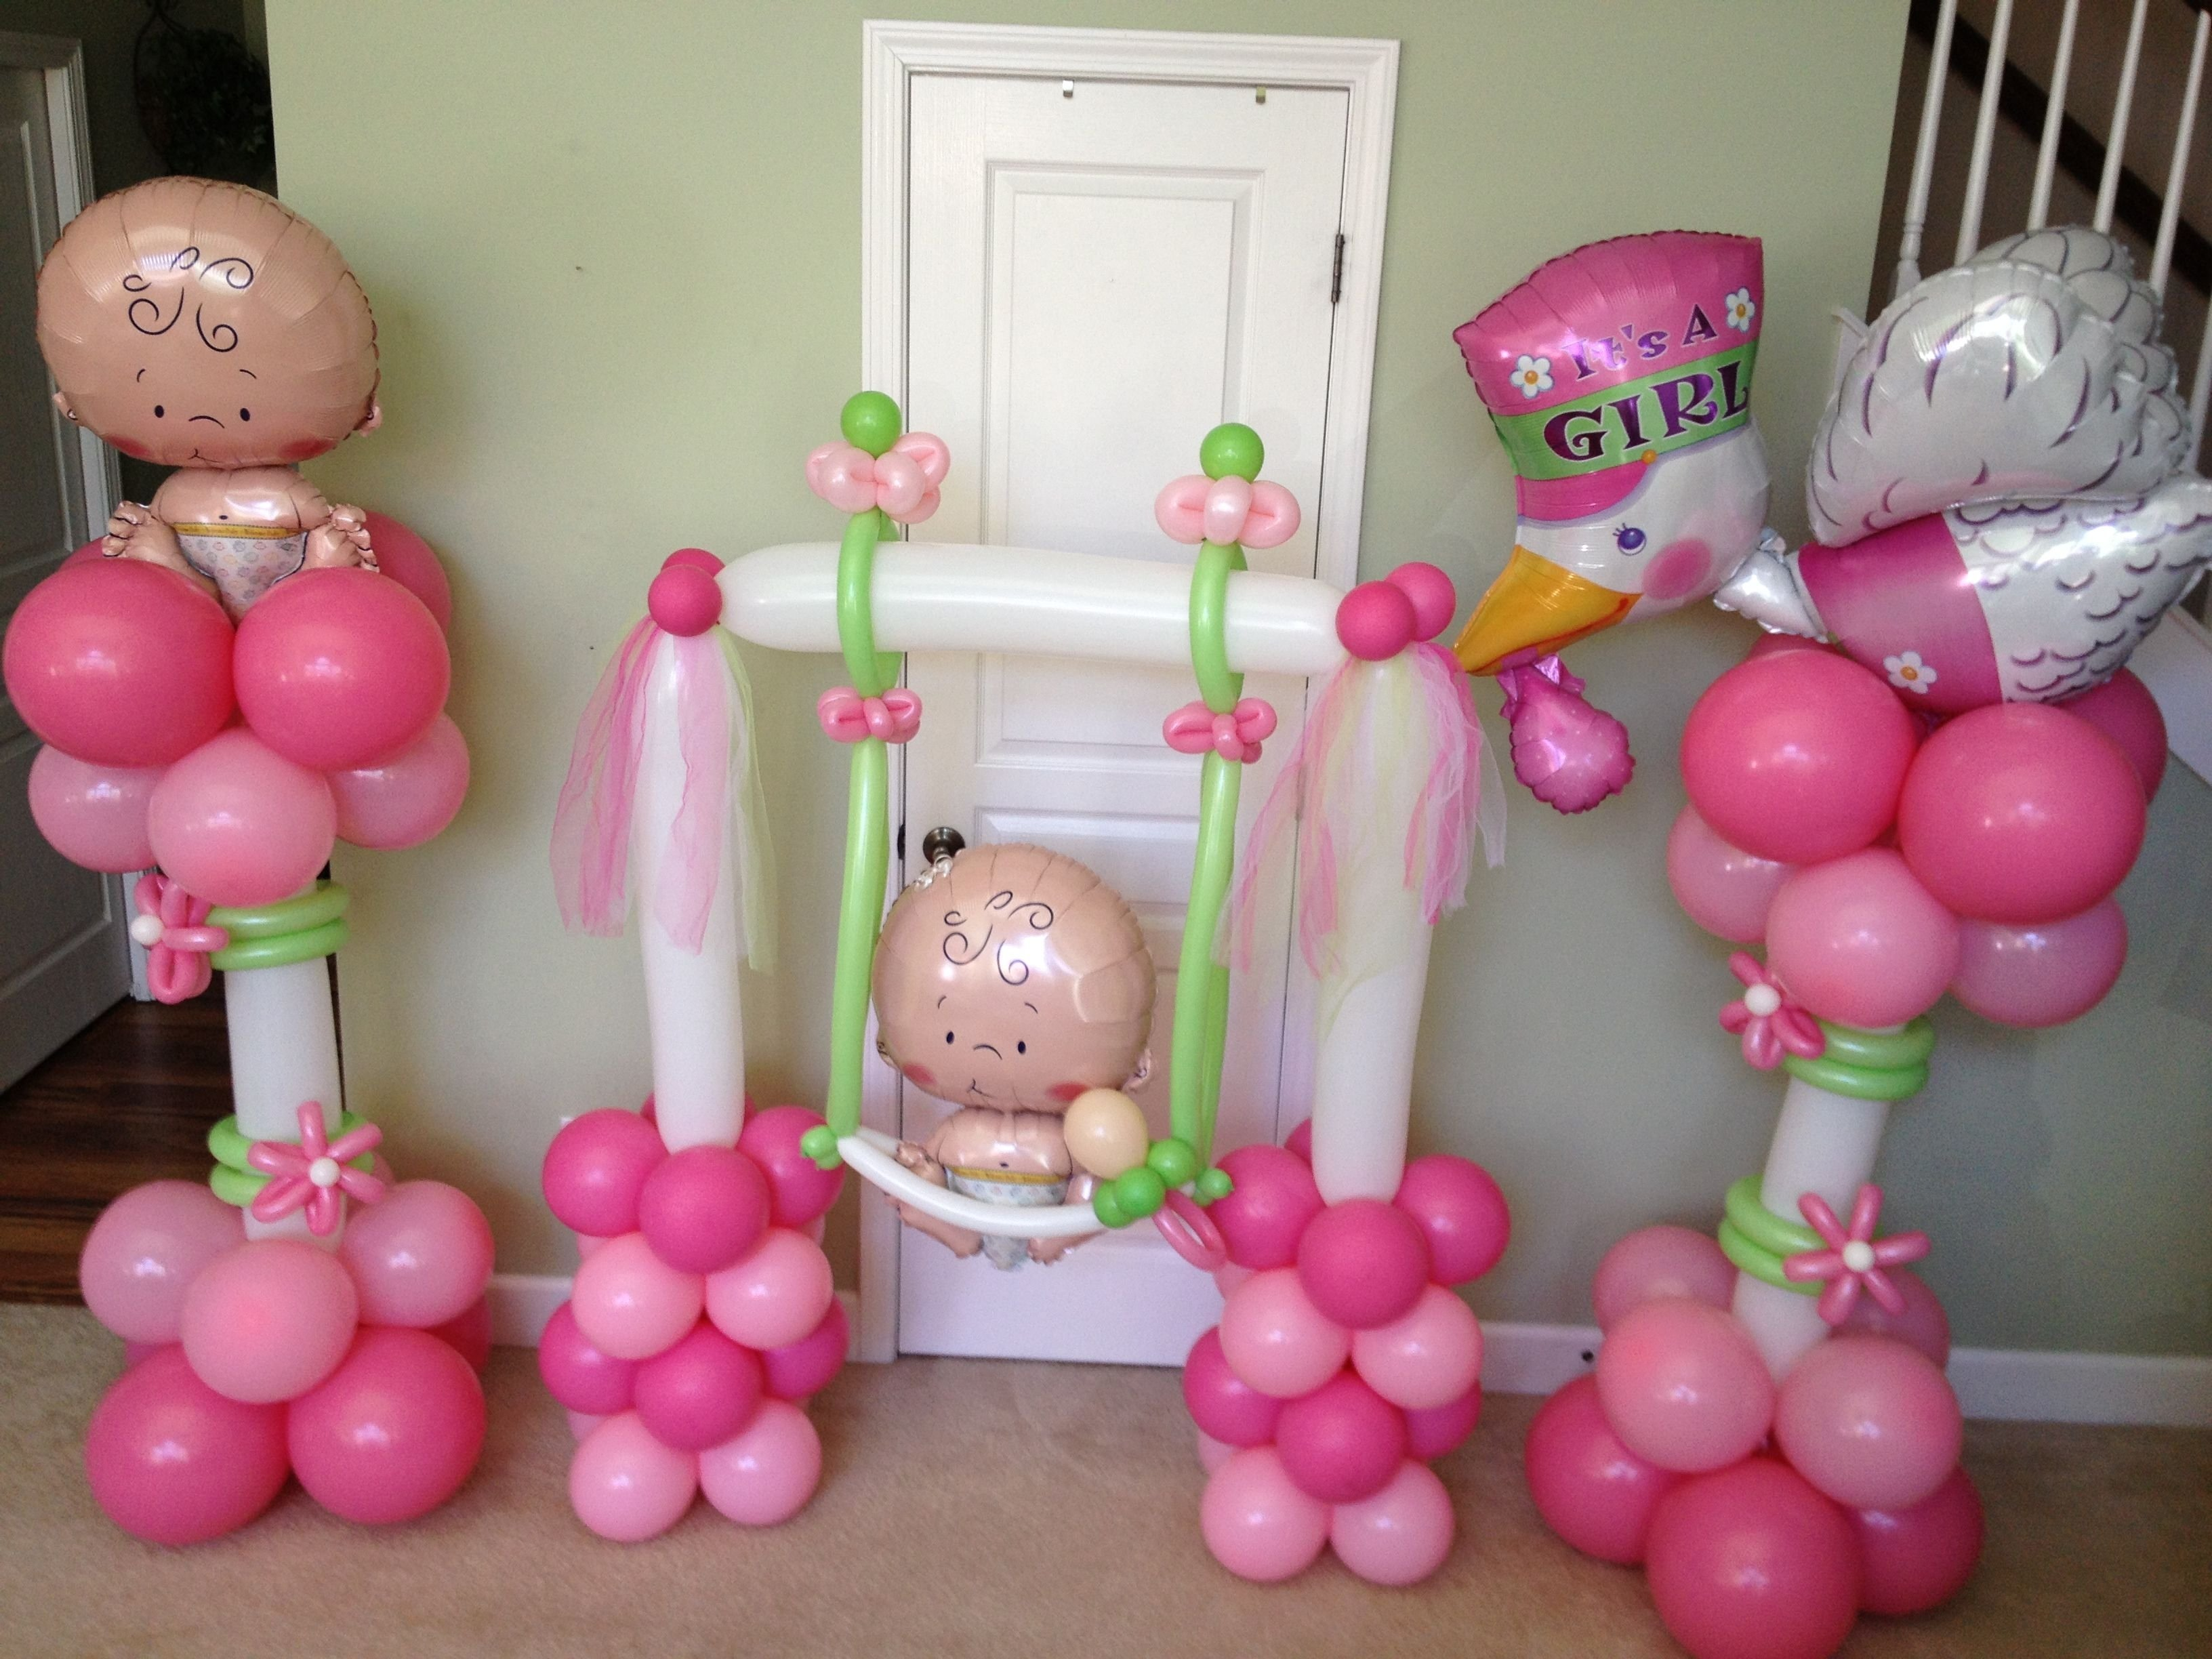 10 Nice Baby Shower Balloon Decoration Ideas baby girl balloon decorations baby shower balloons pinterest 1 2020